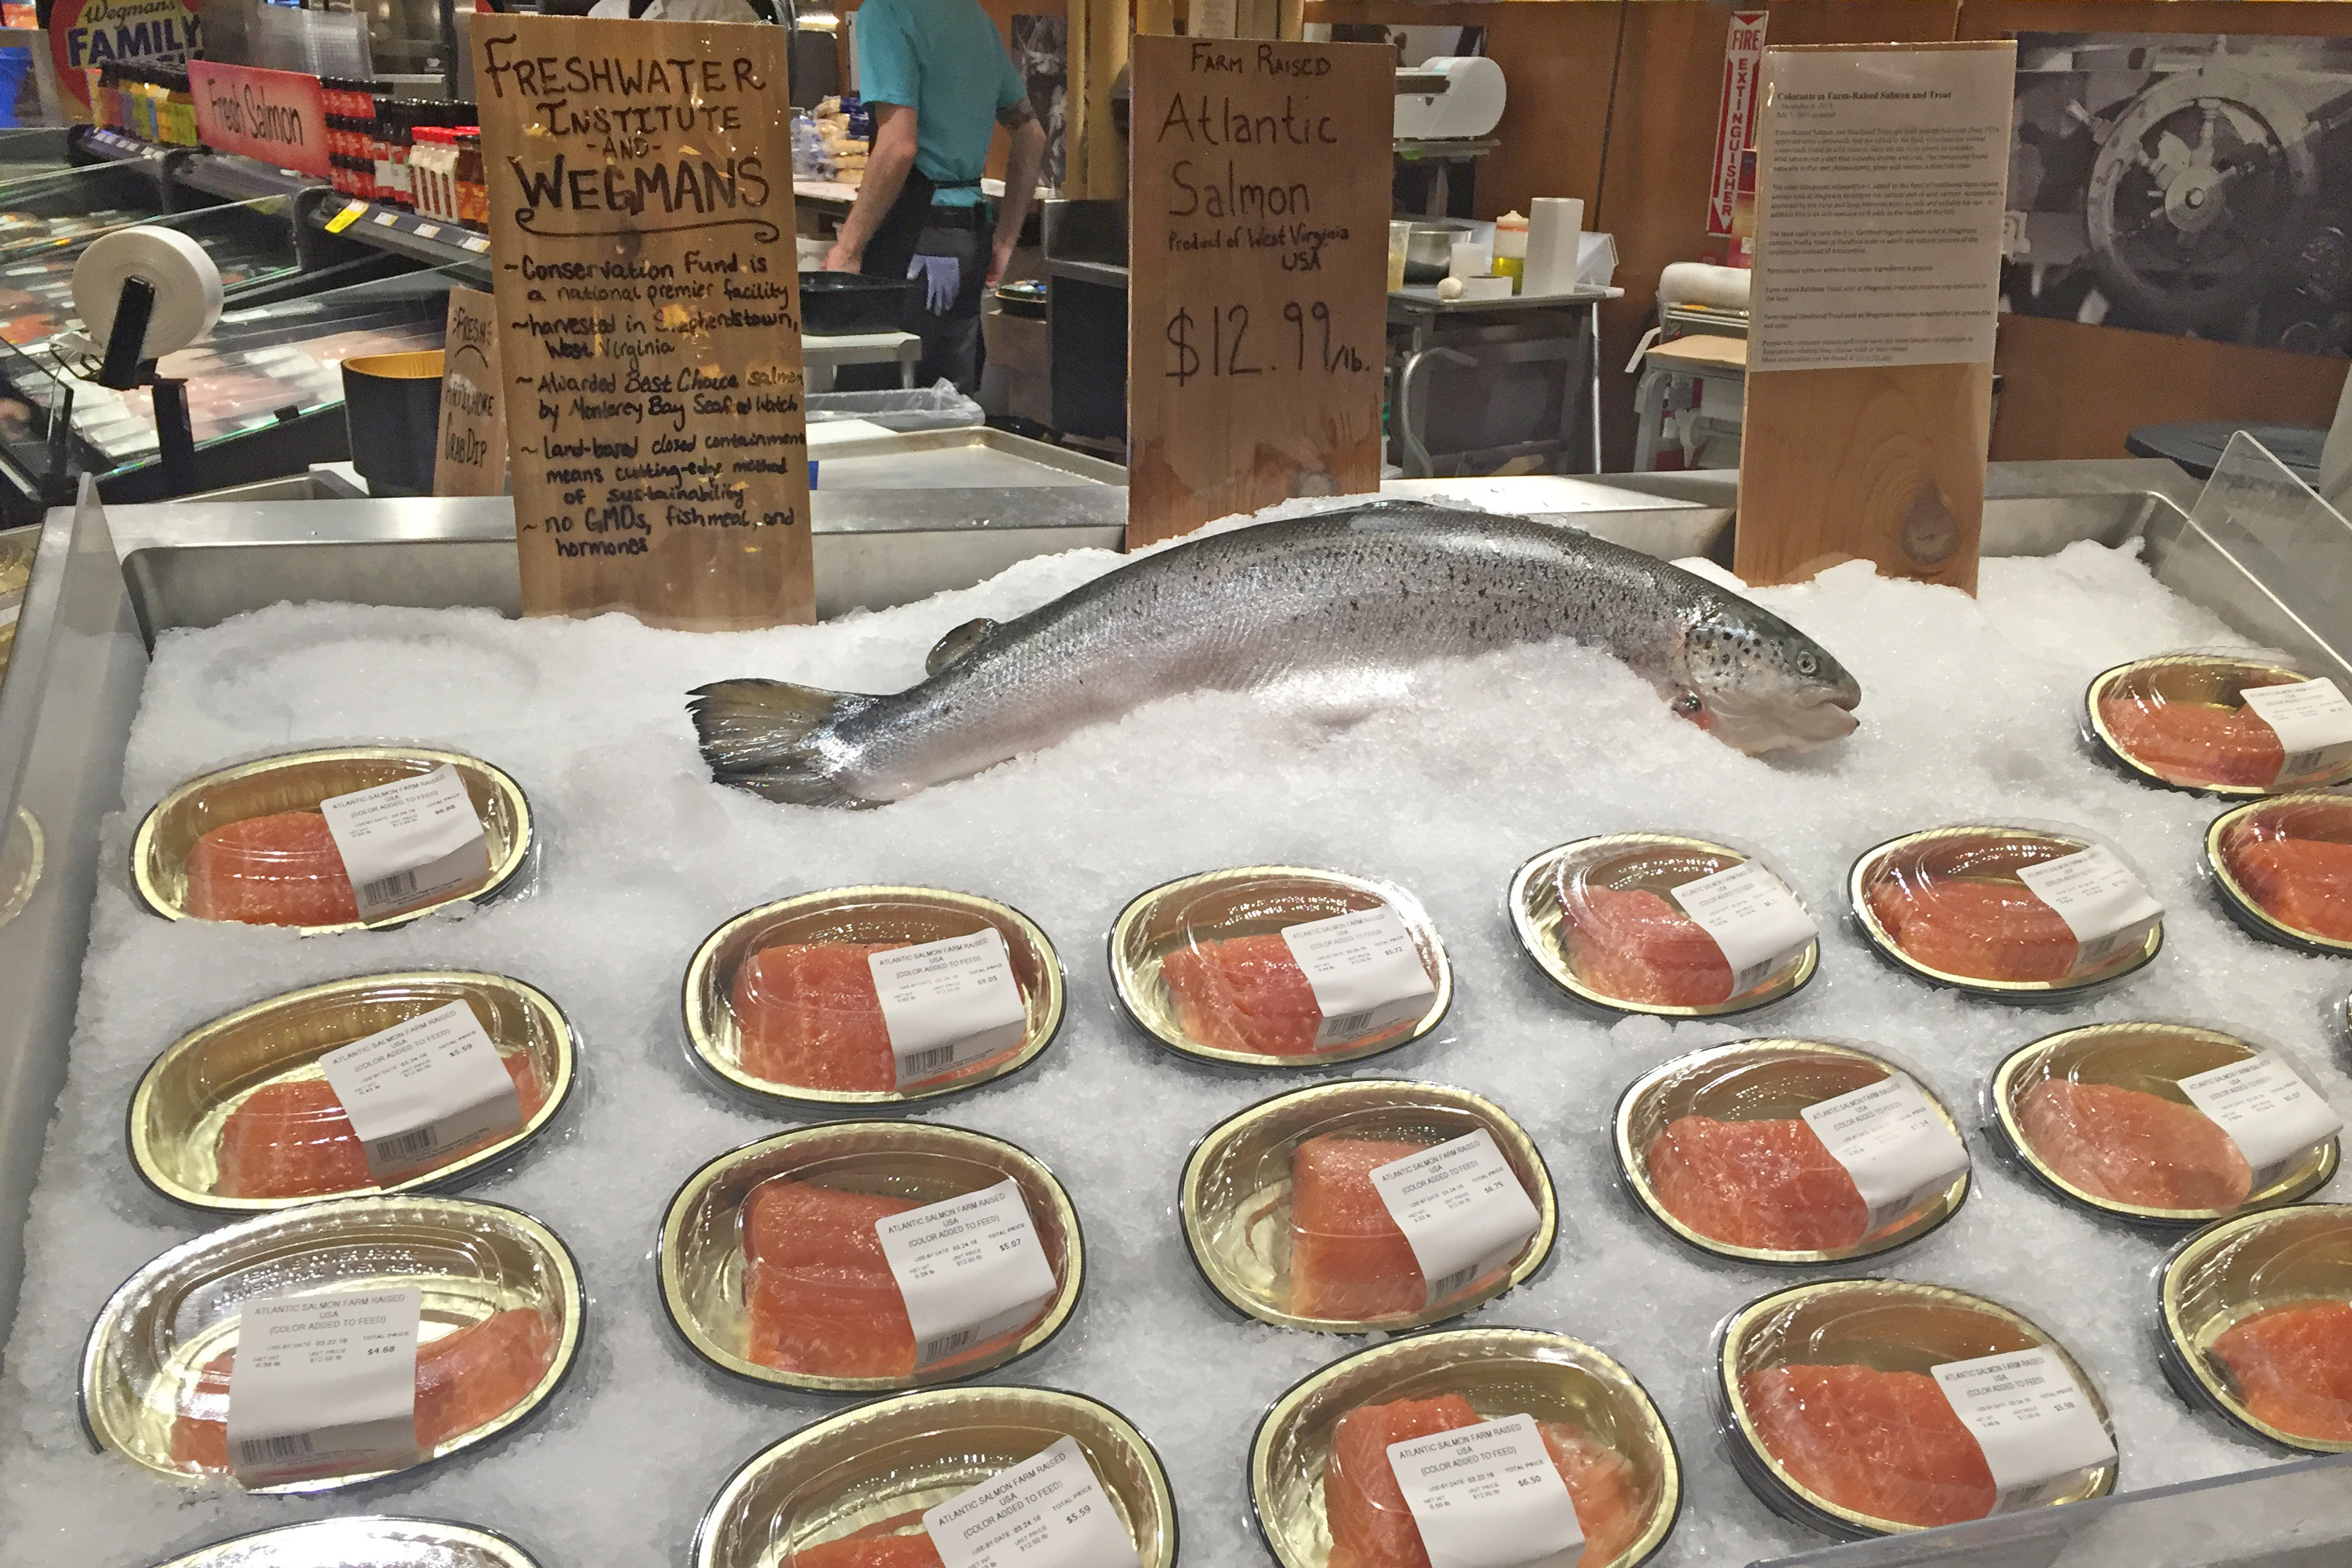 Freshwater Institute Partnership with Wegmans Food Markets